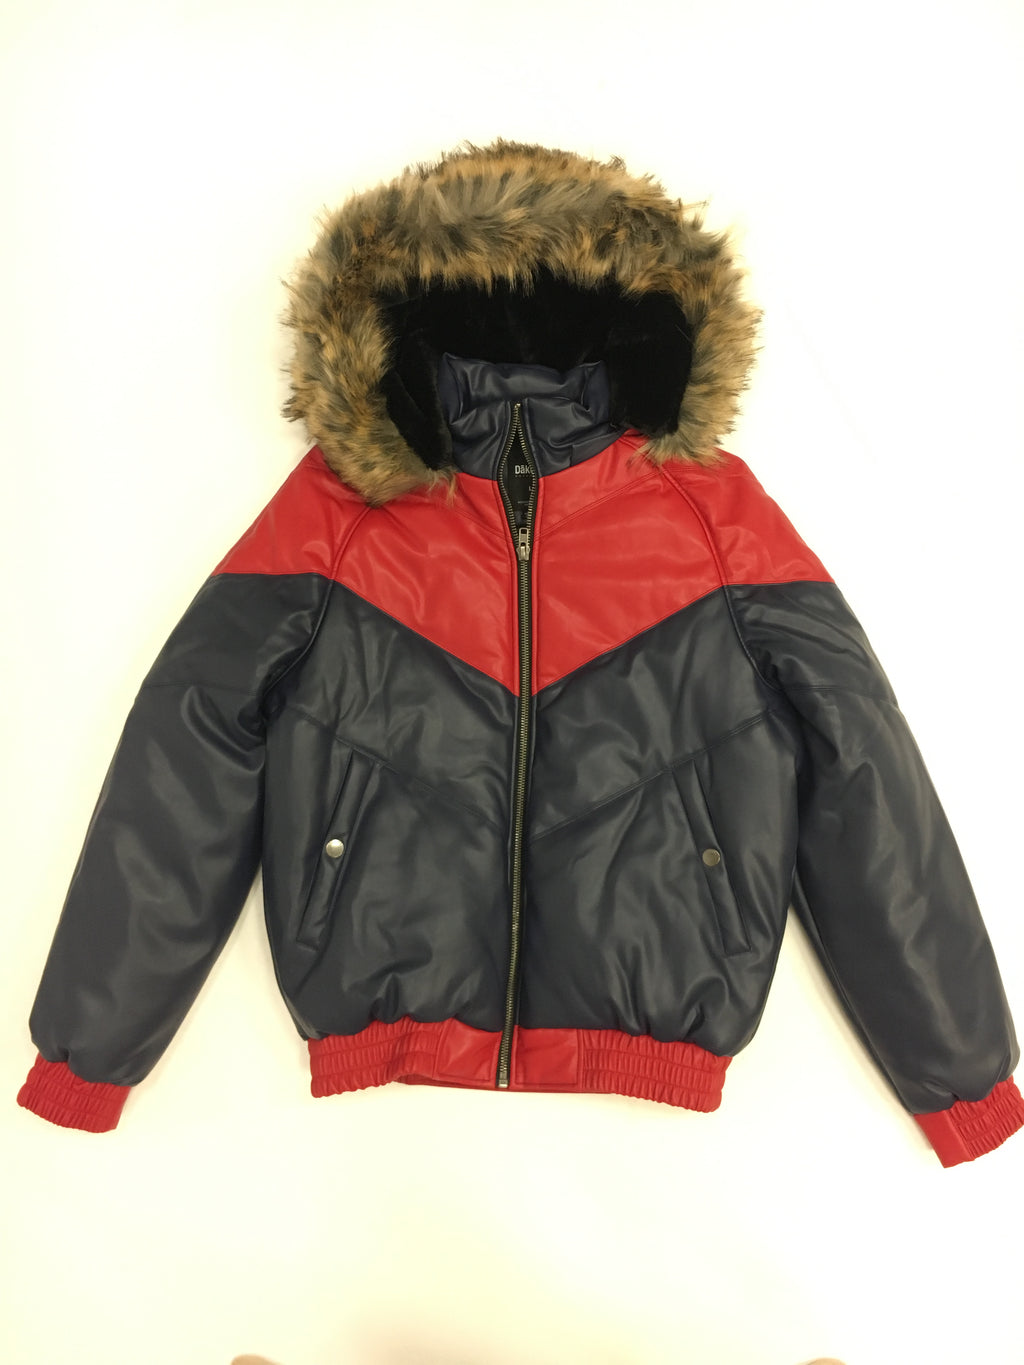 Kids Faux Leather V Bomber Jacket with Detachable Faux Fur Hood - Red and Navy